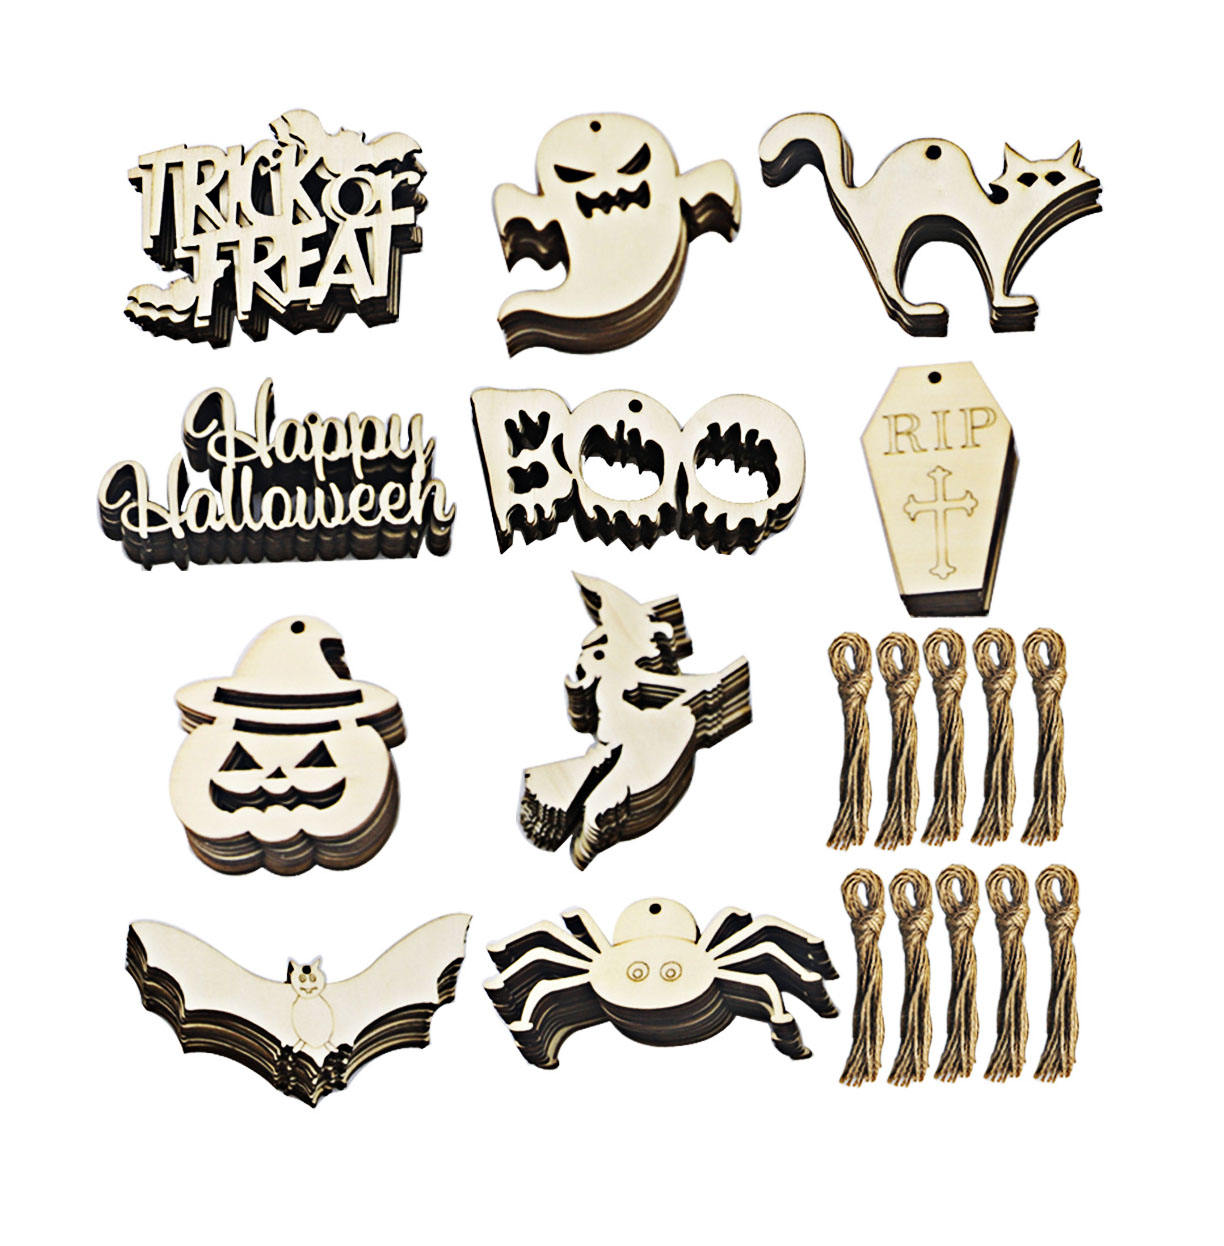 Factory direct wood 10pcs/pack Halloween door hanging and wall decorations party supplies decoration ornaments crafts